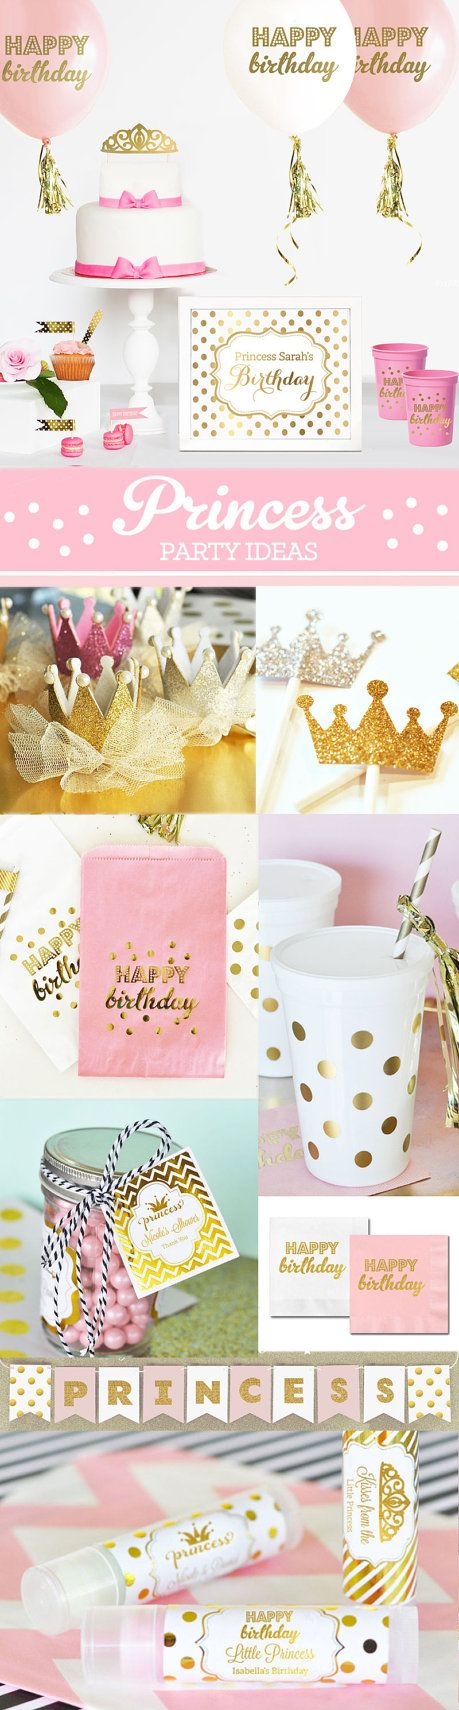 Princess Party Ideas for a 1st Birthday Princess!  Tiara Crown Favors for a 1st Birthday Princess Outfit Photo booth prop! by Mod Party